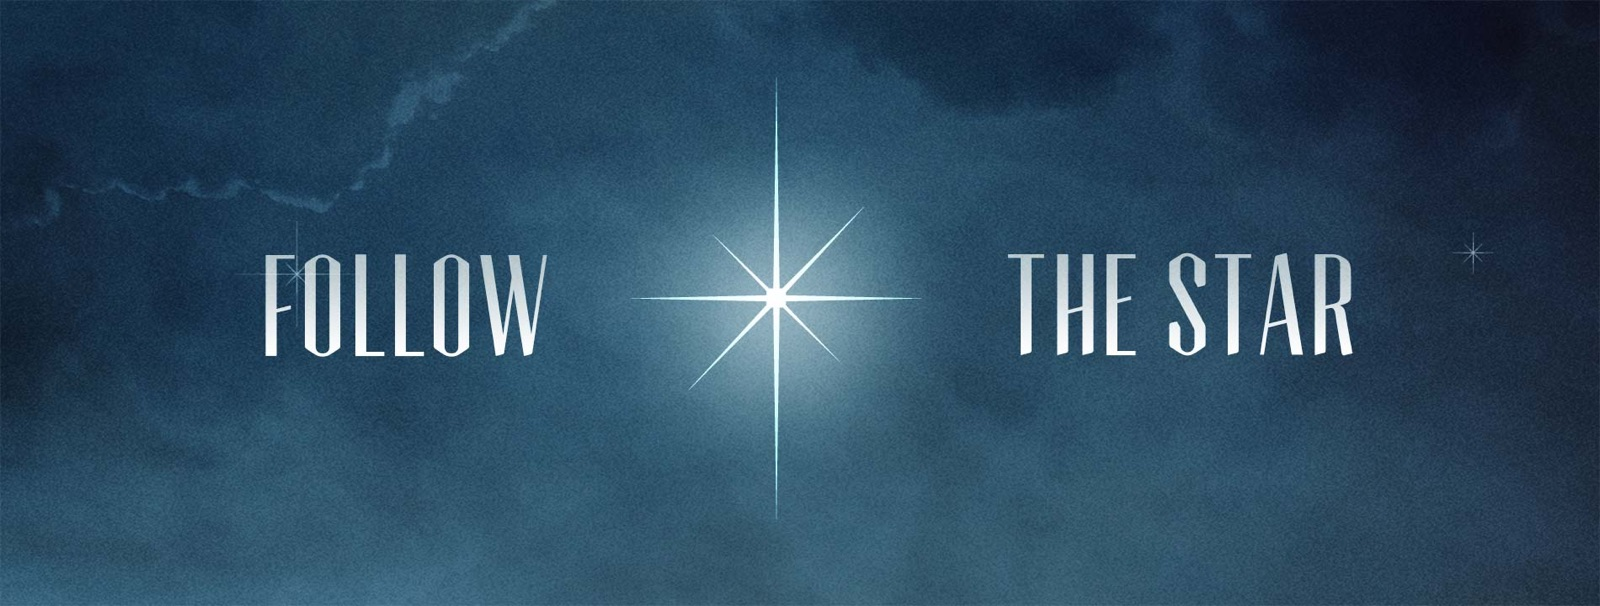 #followthestar | December 2017 (Advent)